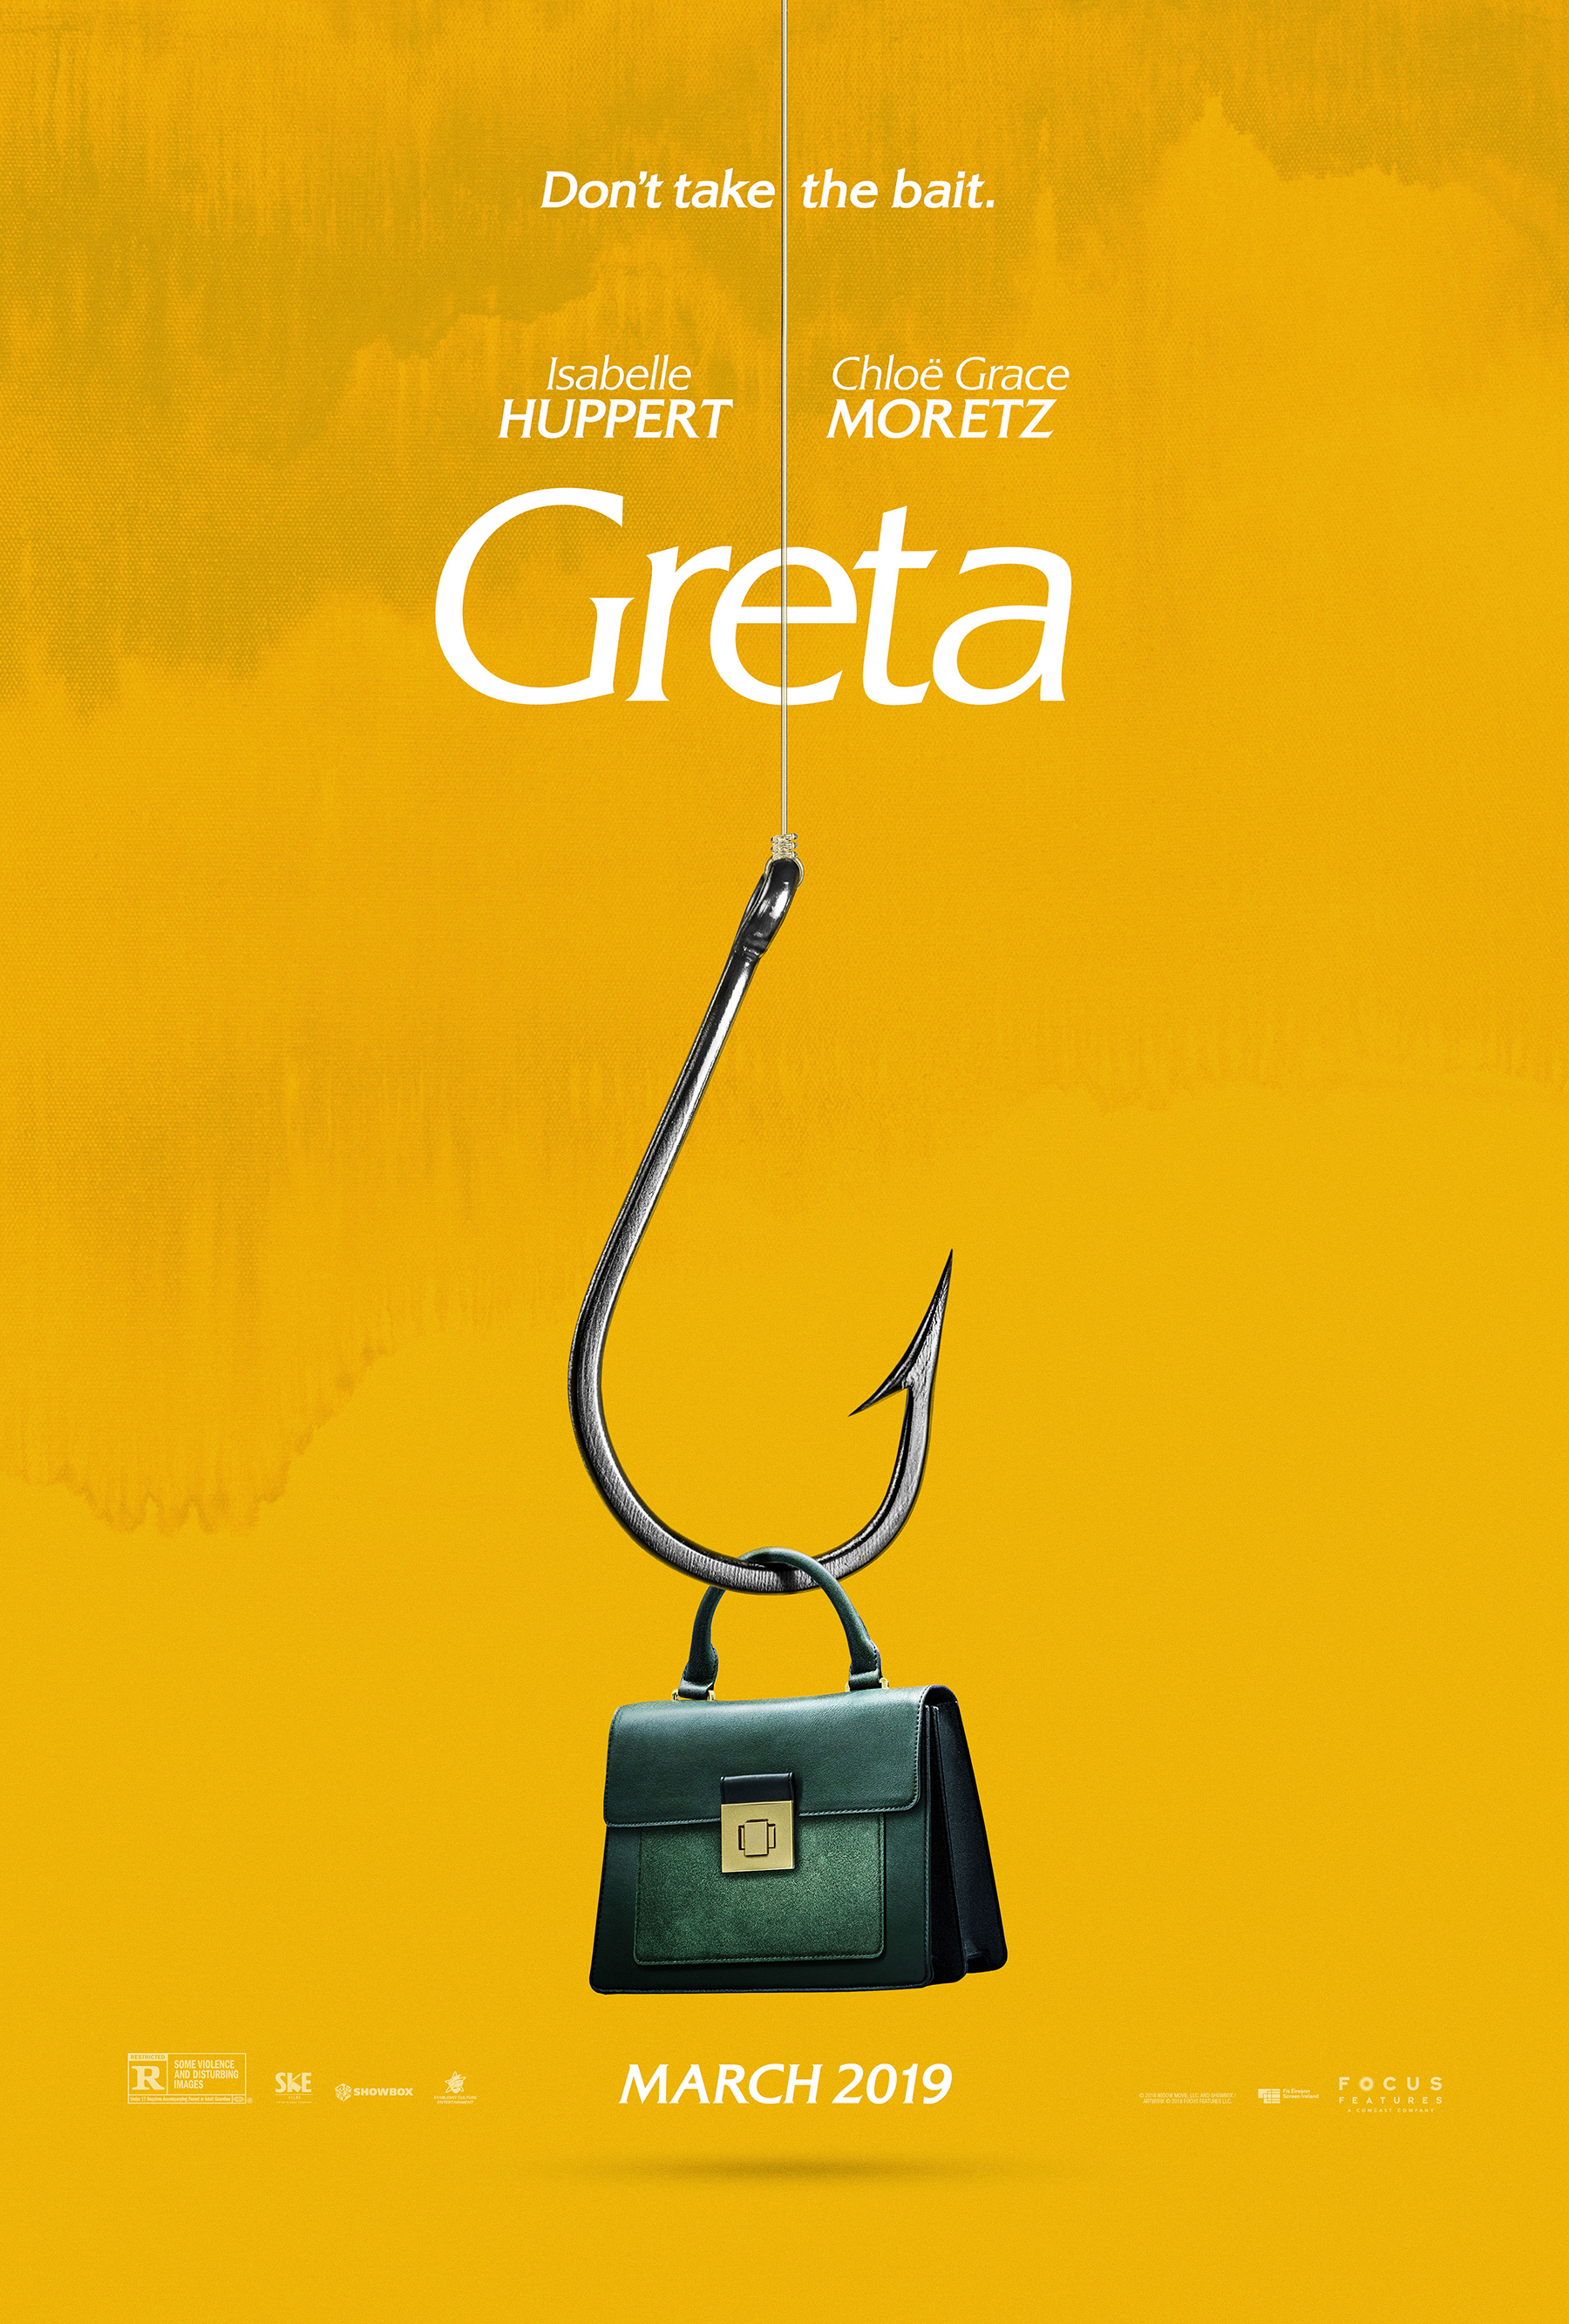 Chloë Grace Moretz, Isabelle Huppert have a toxic friendship in sinister <em>Greta</em> trailer 9